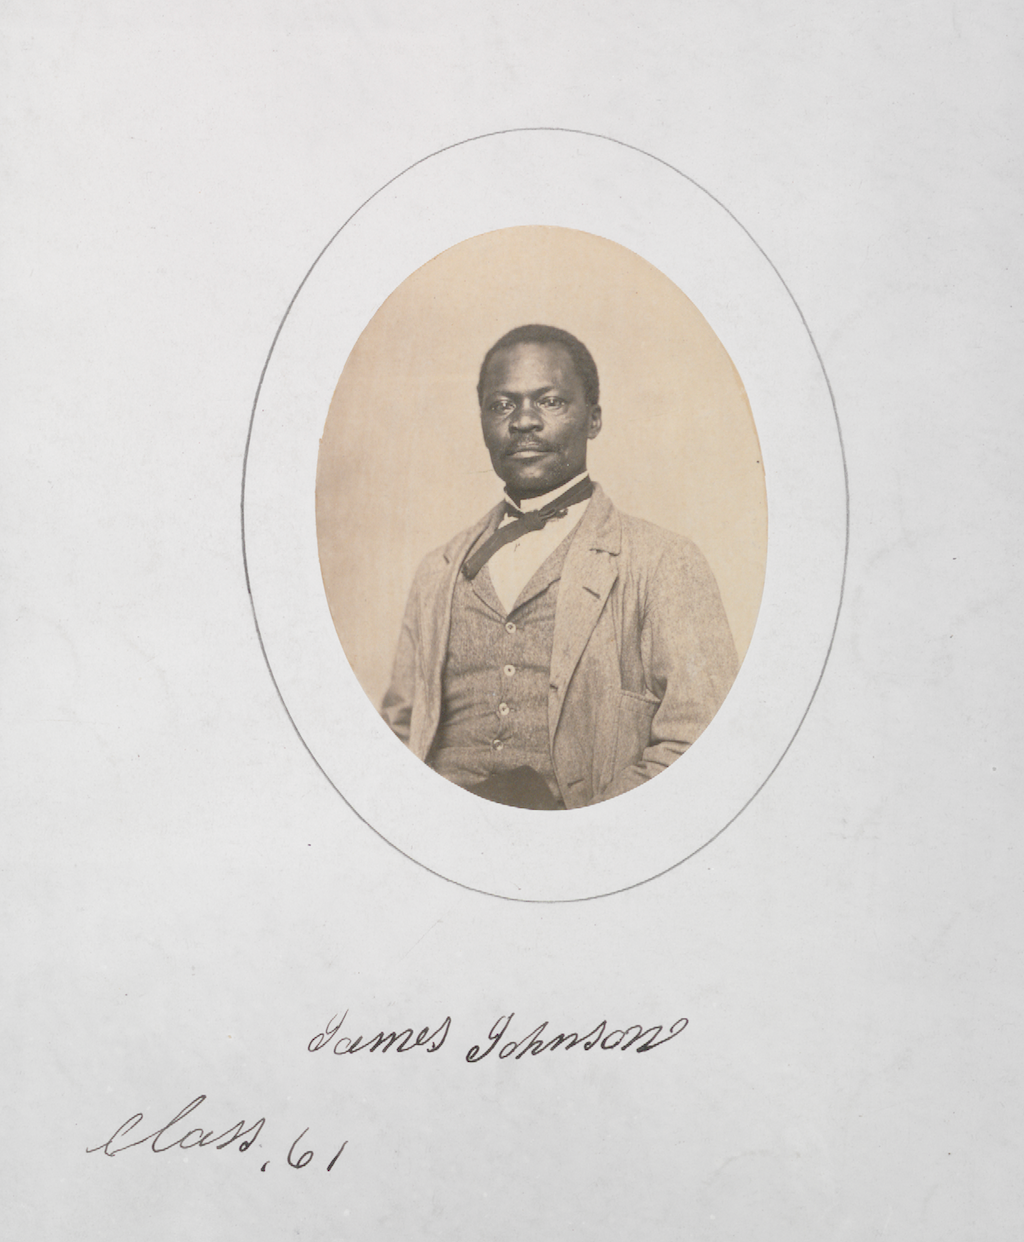 James C. Johnson circa 1861